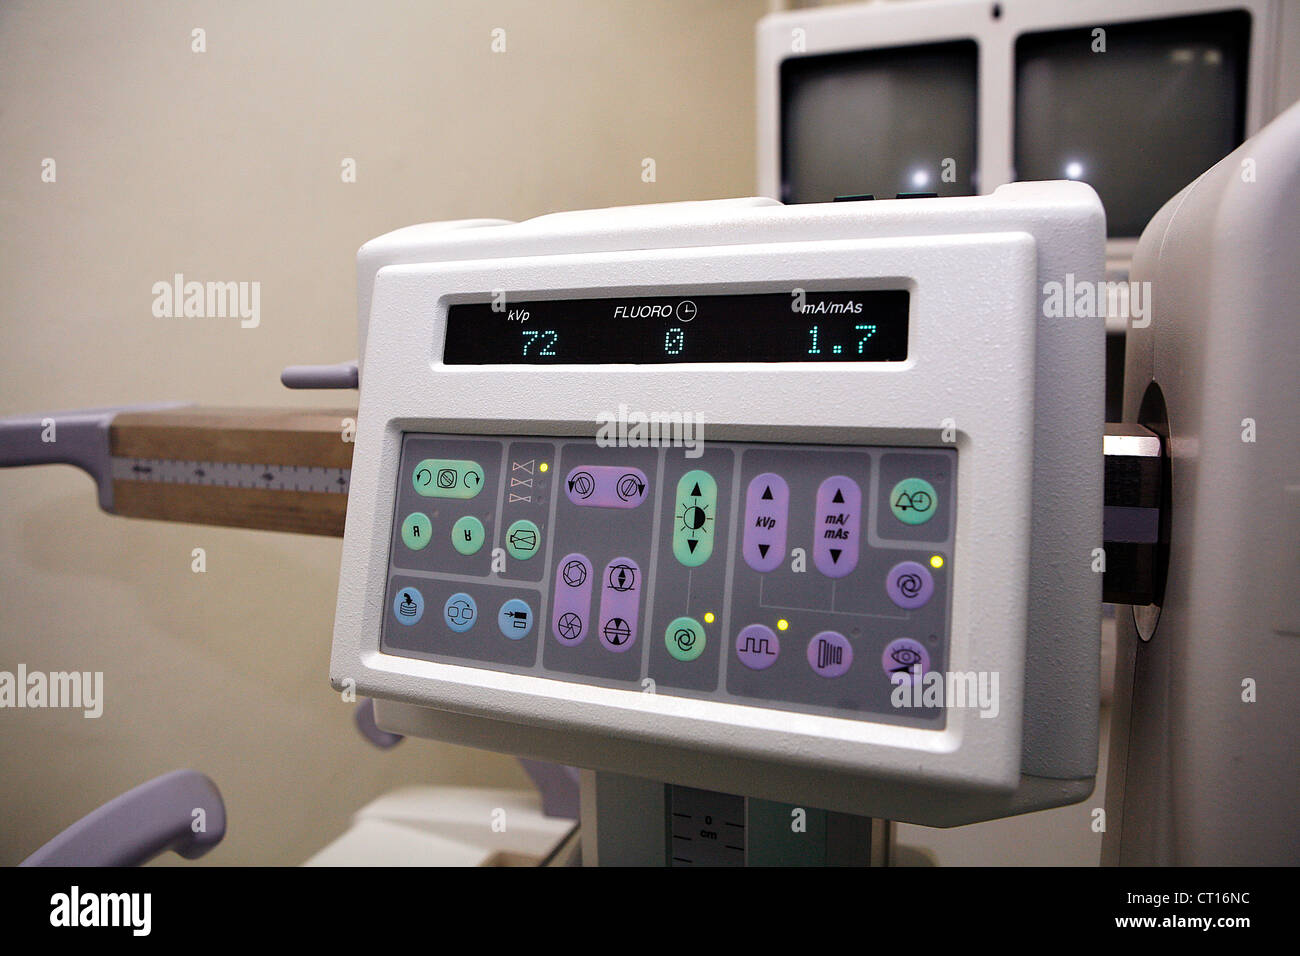 Close up of the control panel to an ultrasound imaging system. - Stock Image